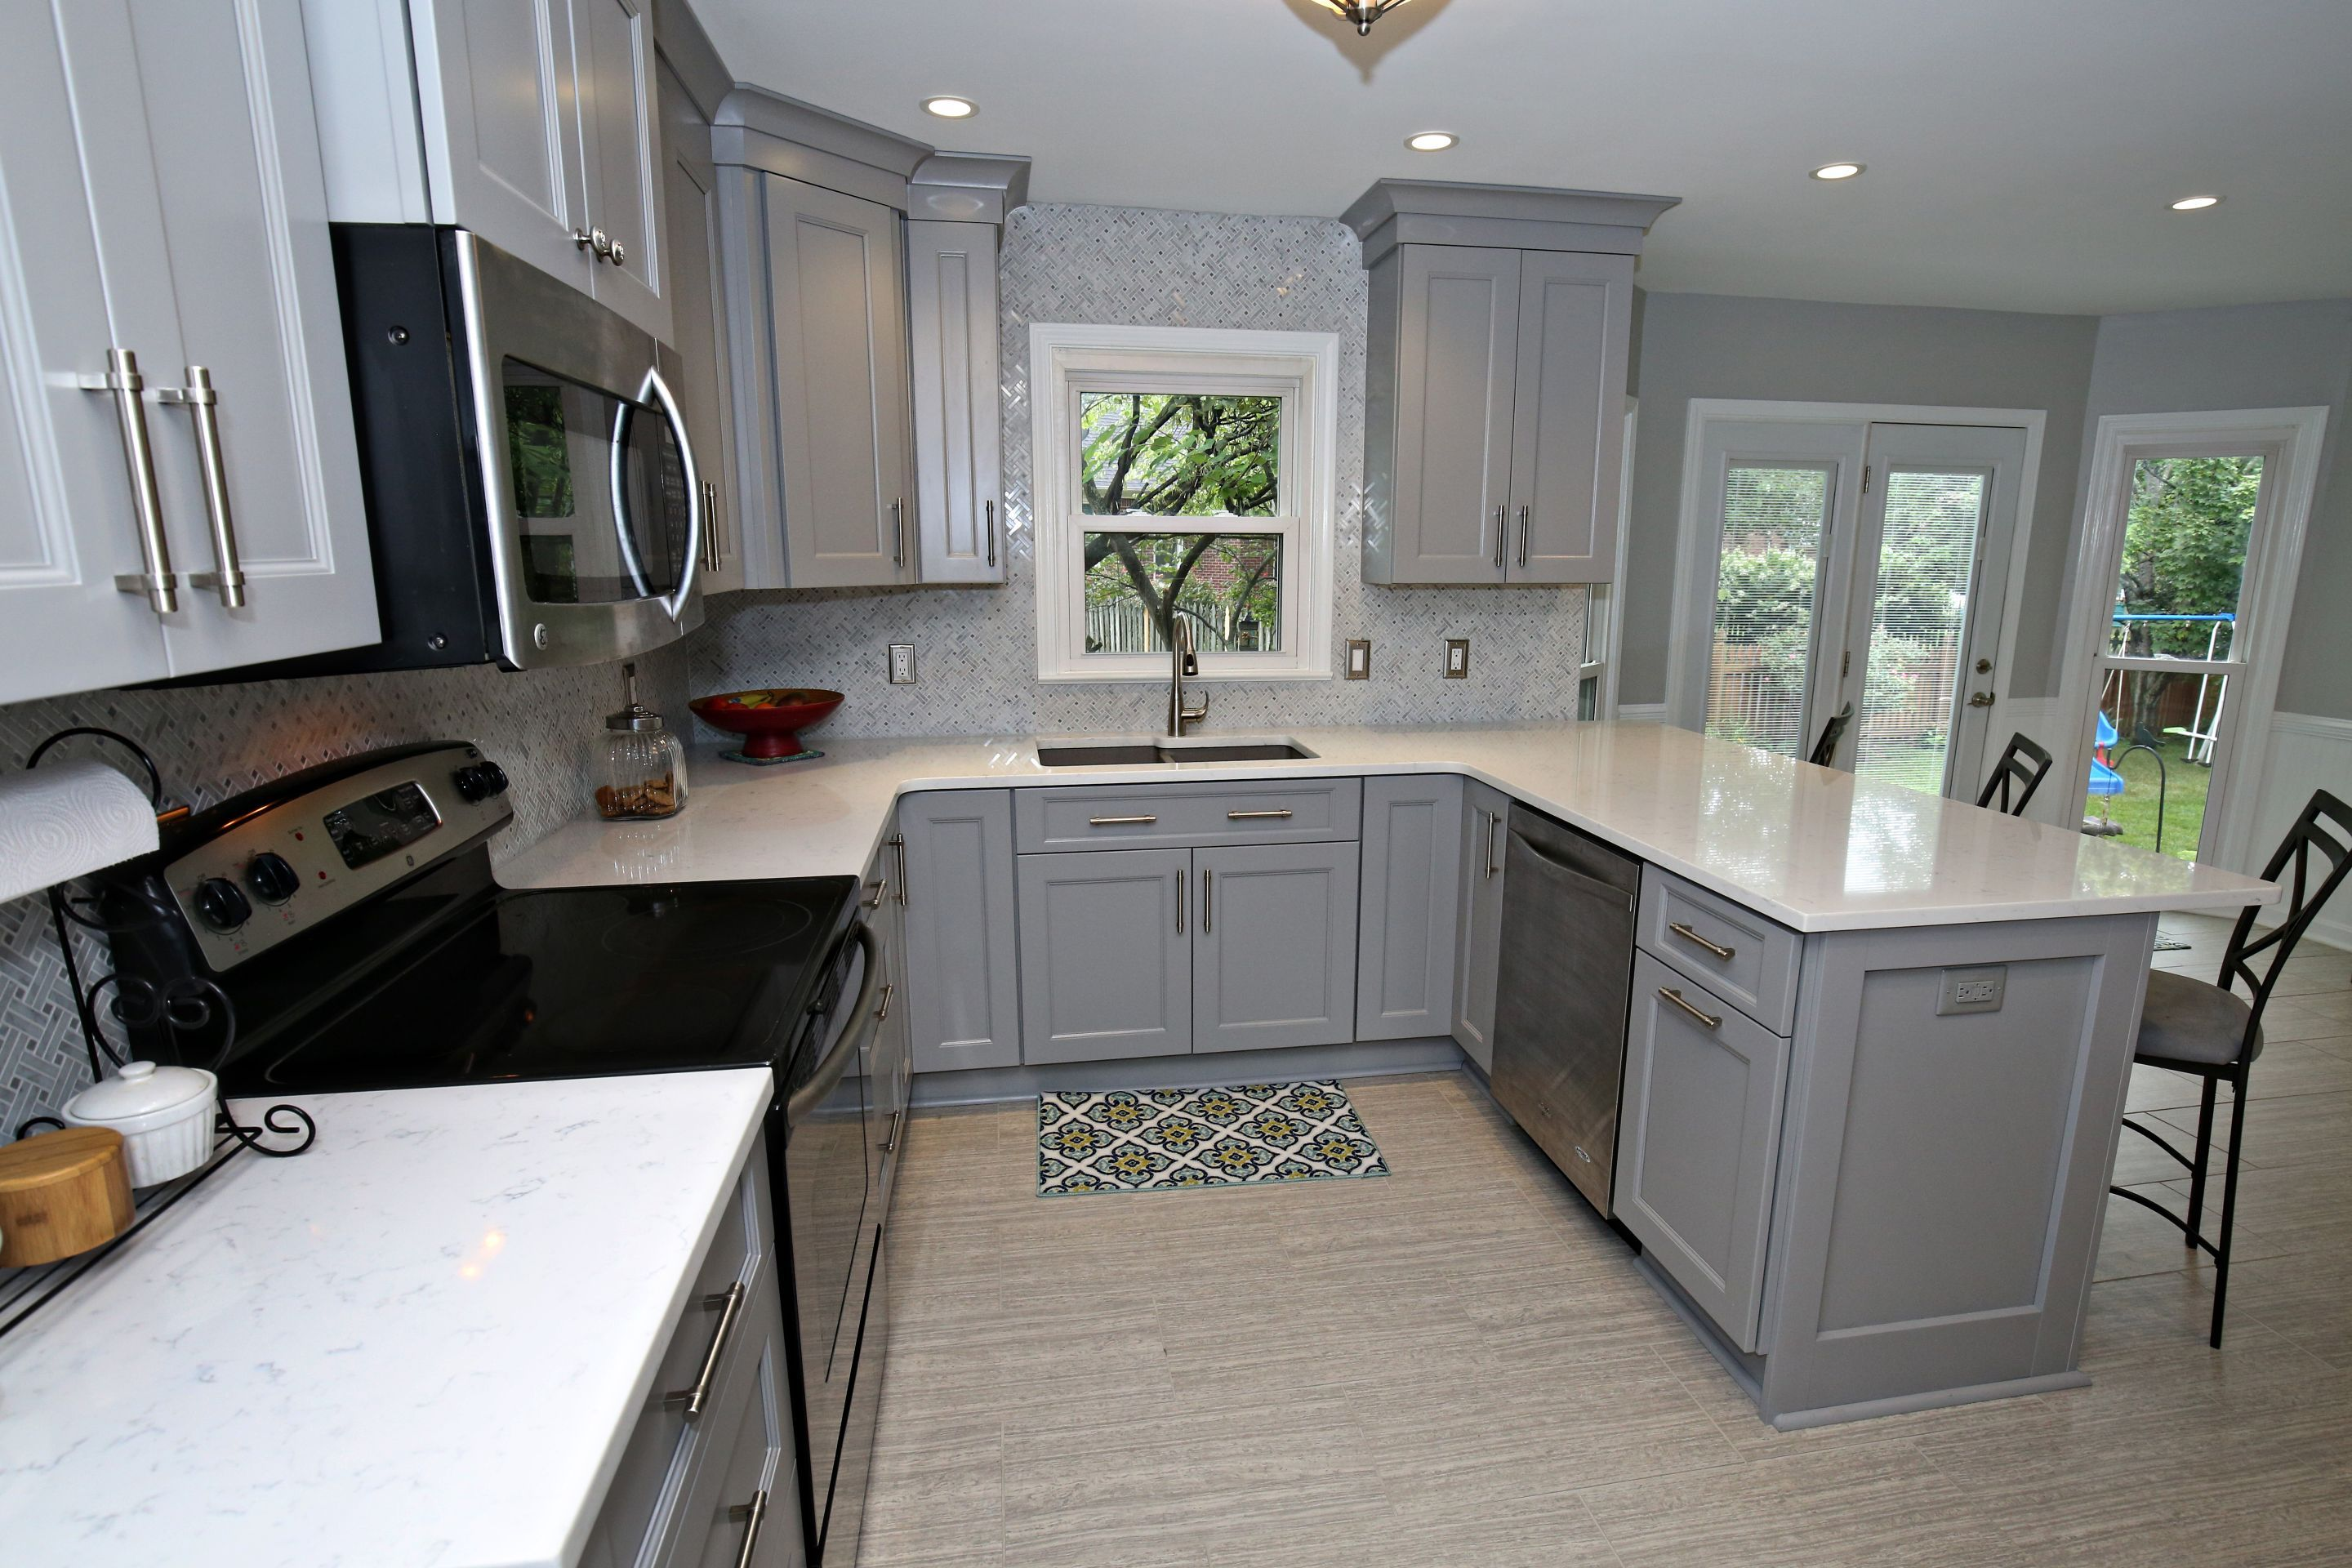 Savvy Home Supply Your Single Source For Kitchen And Bathroom Remodeling Cabinets Gran Simple Bathroom Remodel Cheap Bathroom Remodel Full Bathroom Remodel